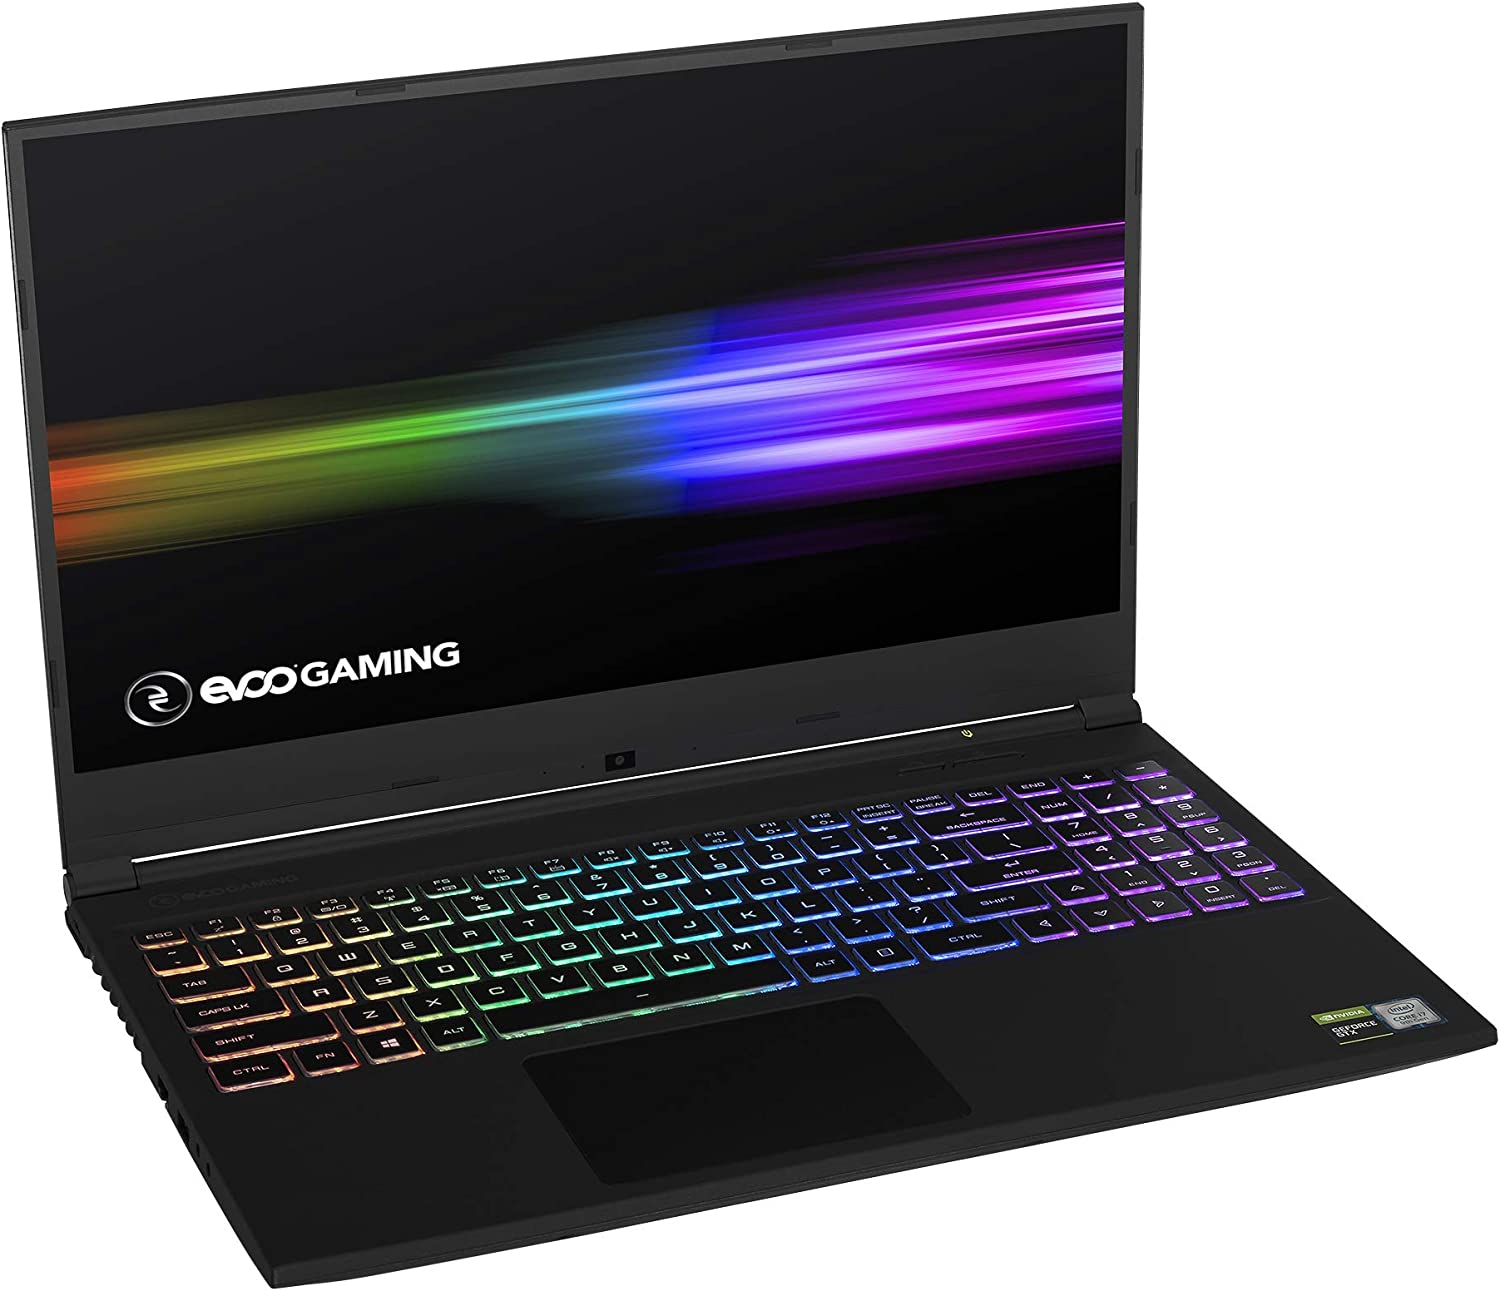 "EVOO Gaming Laptop 15"" FHD 144Hz Display, THX Spatial Audio, Tuned by THX Display, 9th Gen Intel i7-9750H, Nvidia GTX 1650, 256GB SSD, 16GB Memory, Windows 10 Home, Black"